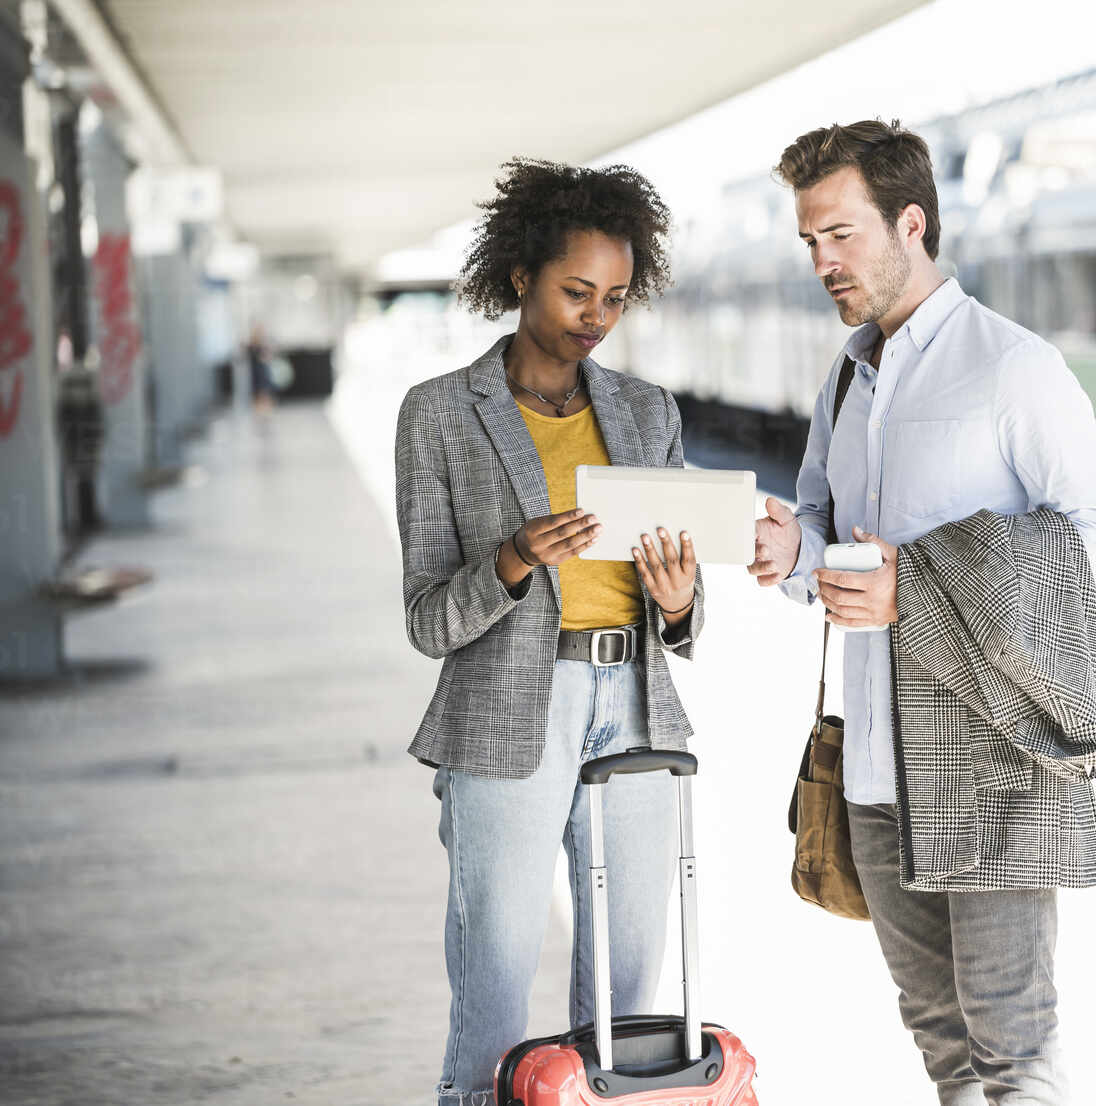 Young businessman and businesswoman using tablet together at the train station - UUF20184 - Uwe Umstätter/Westend61